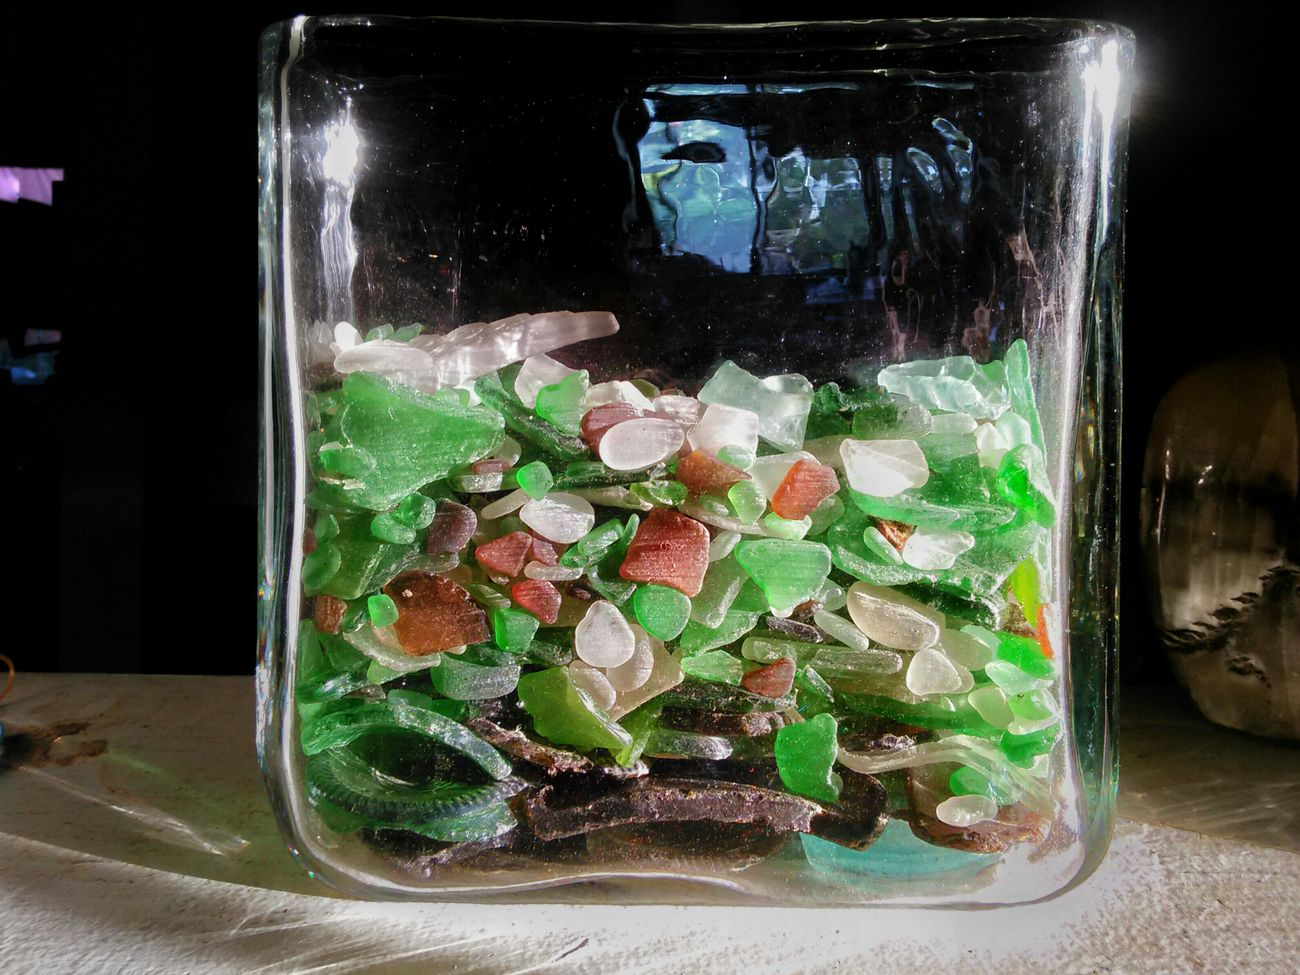 My Collection of Sea Glass and Beach Glass . This is all The Real Deal  , collected On The Shore of Beaches everwhere. Some of this Glass must have been in the water for decades, getting Weathered and its sharp edges Eroded, its surfaces Etched by friction in the Sand . Of course you can get Faux  Beachglass at any arts and crafts store, just know that it's been manufactured, and isn't nearly as characteristic of the genuine article. Edges are sharper, the Etched Glass is not as pronounced.... finding a well worn piece of glass on the beach is as rewarding as finding a gem....well, almost, seeing how I've yet to find a gem. When I do, I will come back and retract this statement. :^D Being A Beach Bum Lifes A Beach Shoreline Sand & Sea Beachcombing Beachcollection Beachcombers Beached Collections Object Collectors Item Broken Glass